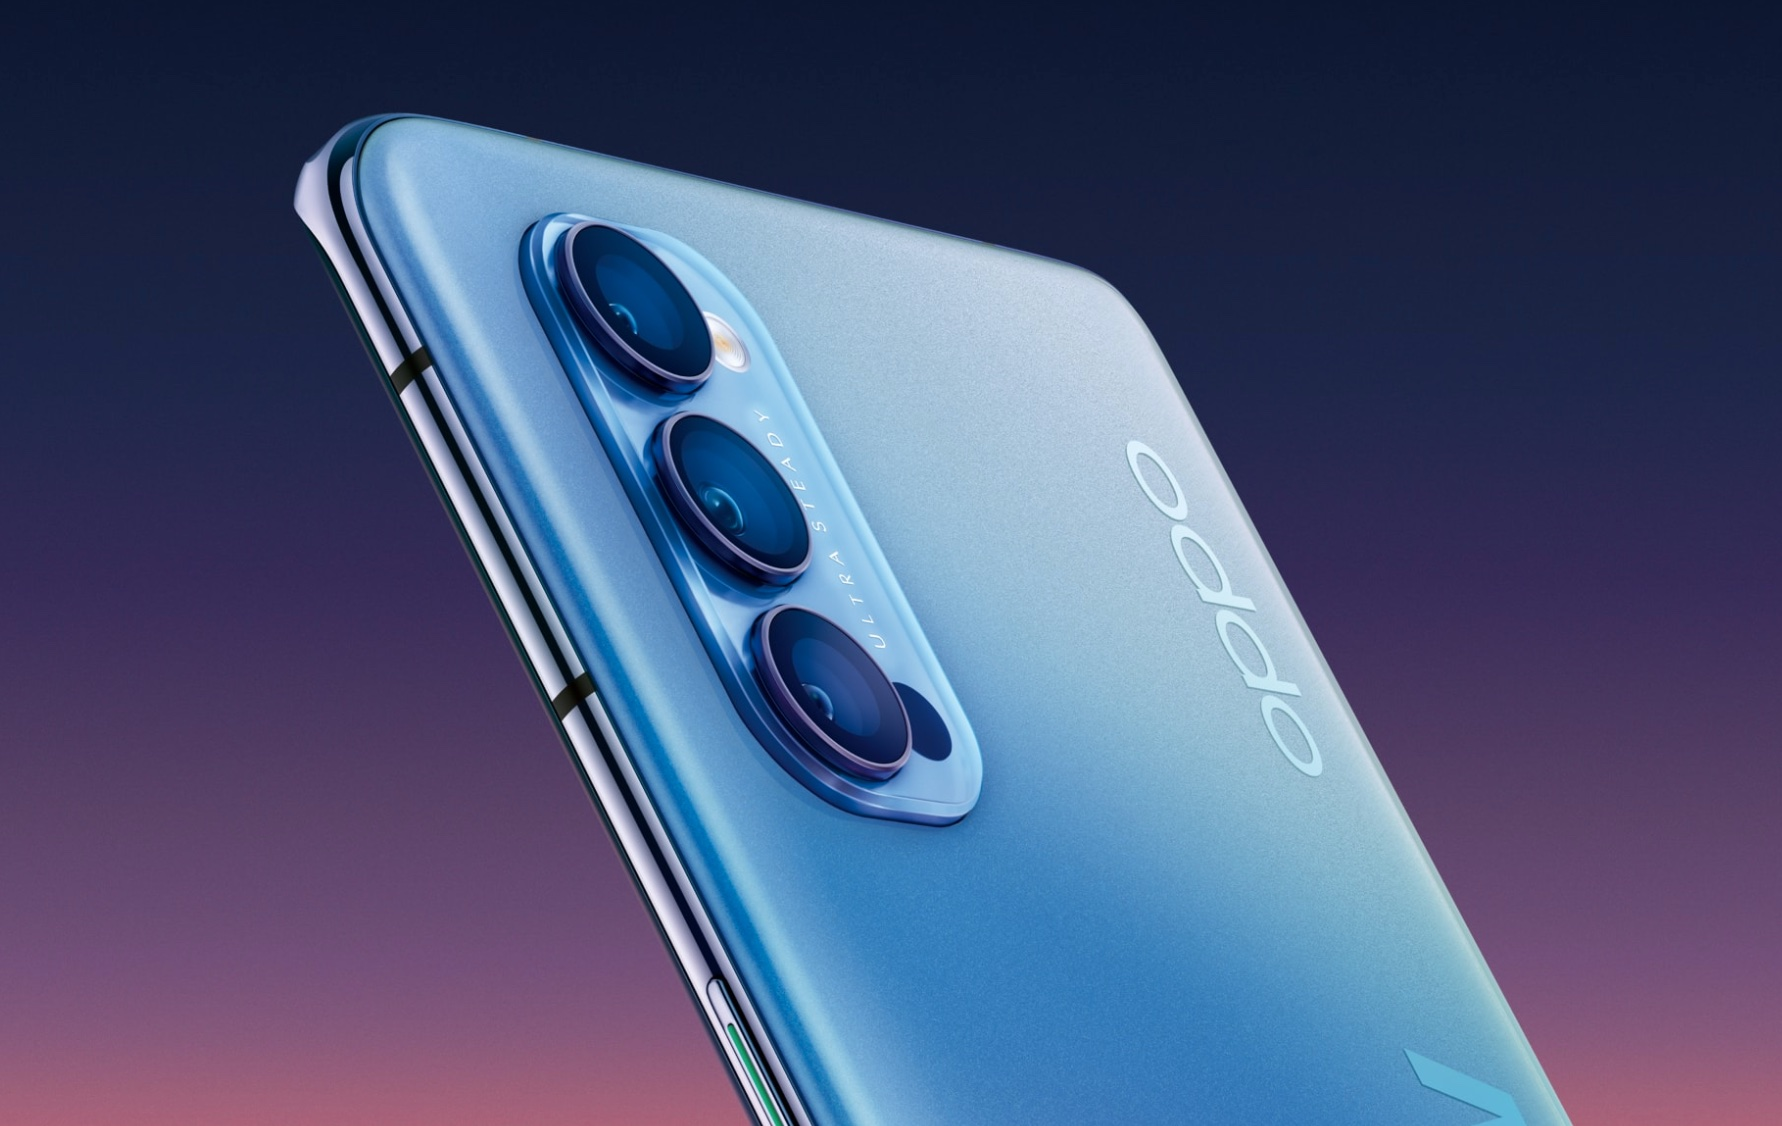 OPPO increases smartphone orders by up to 100 million units  as Huawei's global expansion hits wall-cnTechPost